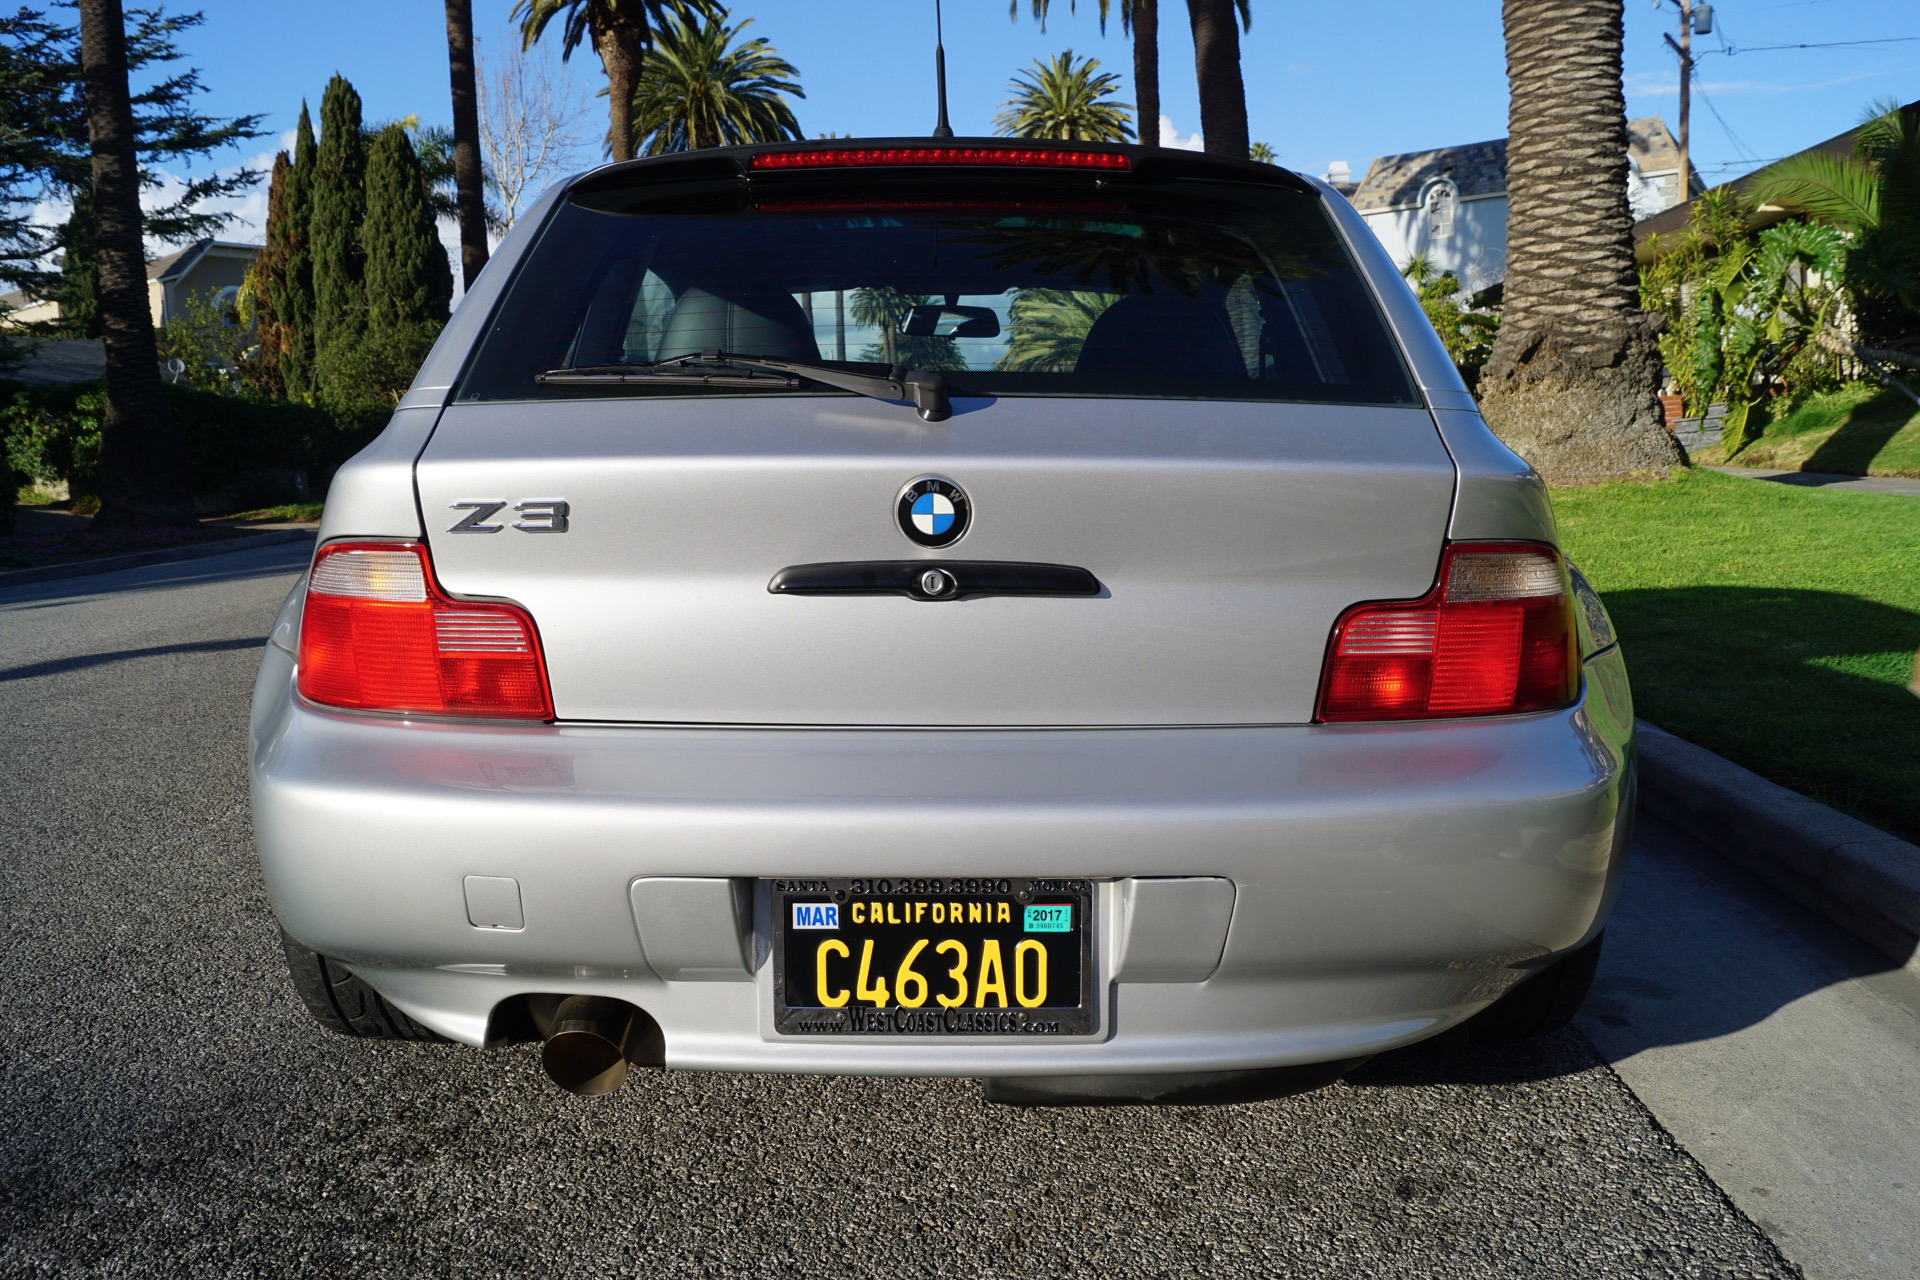 2000 Bmw Z3 Coupe 2 8 Stock 238 For Sale Near Torrance